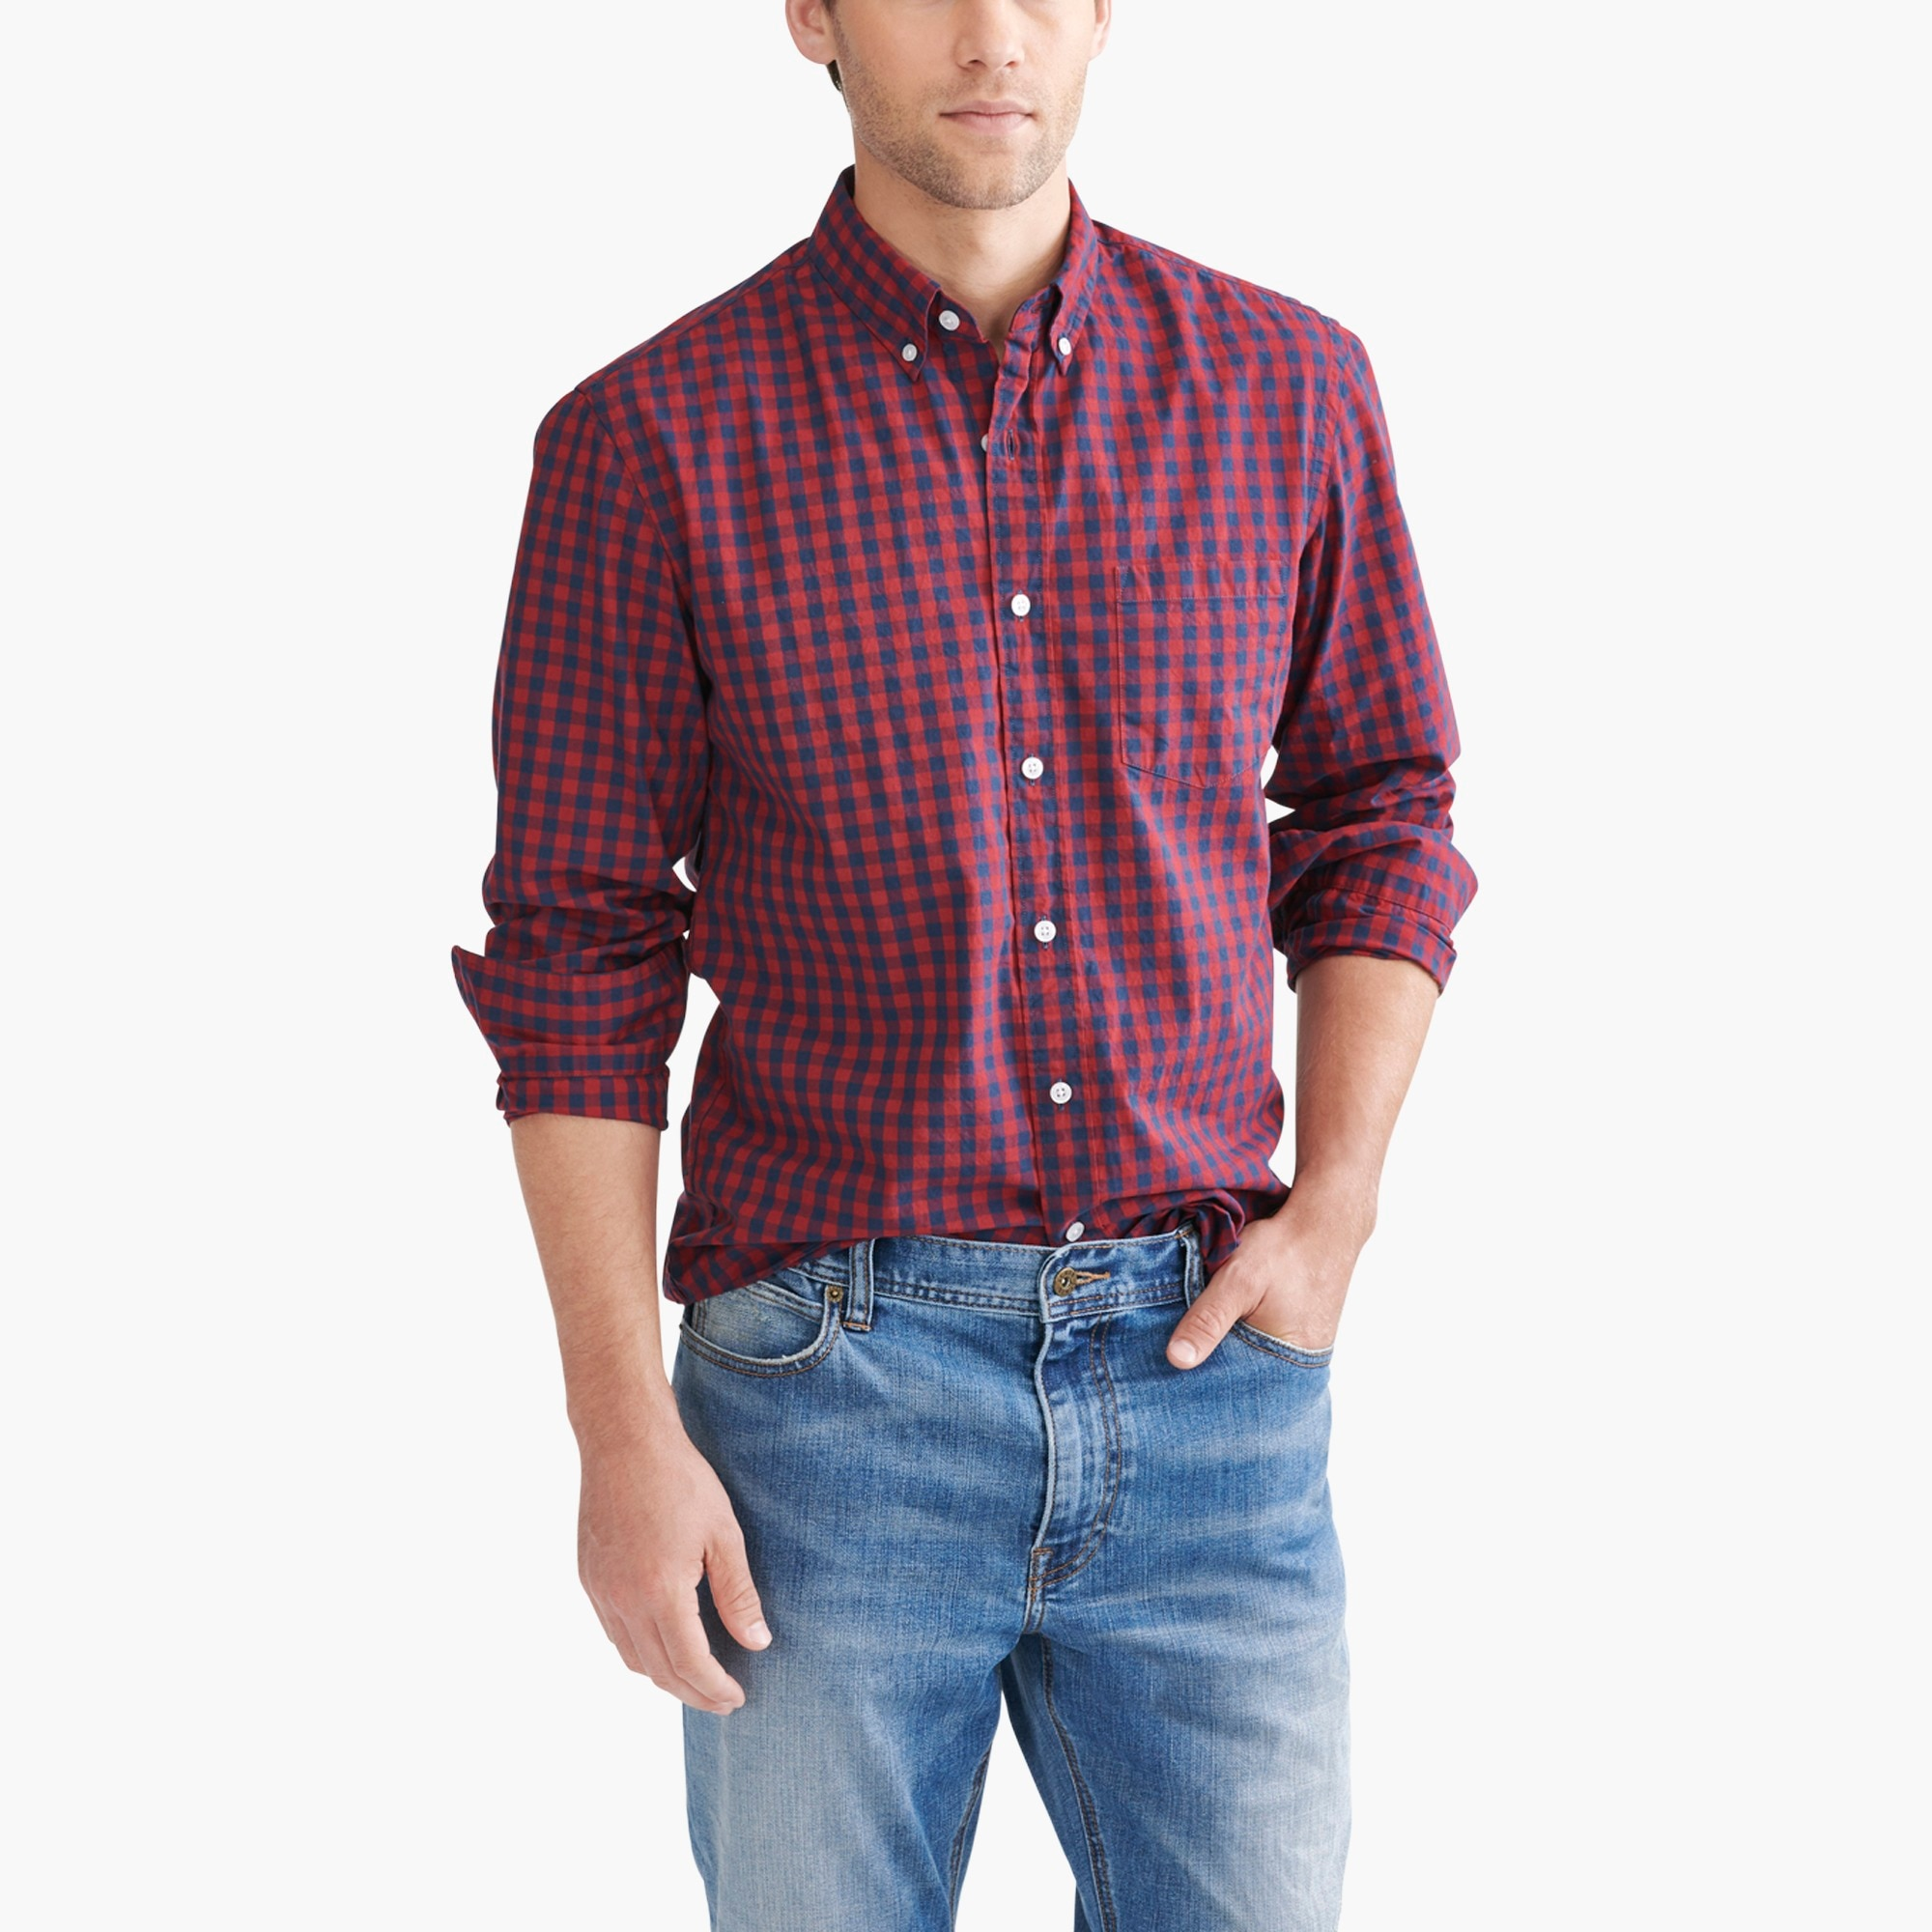 Image 1 for Classic flex washed shirt in gingham